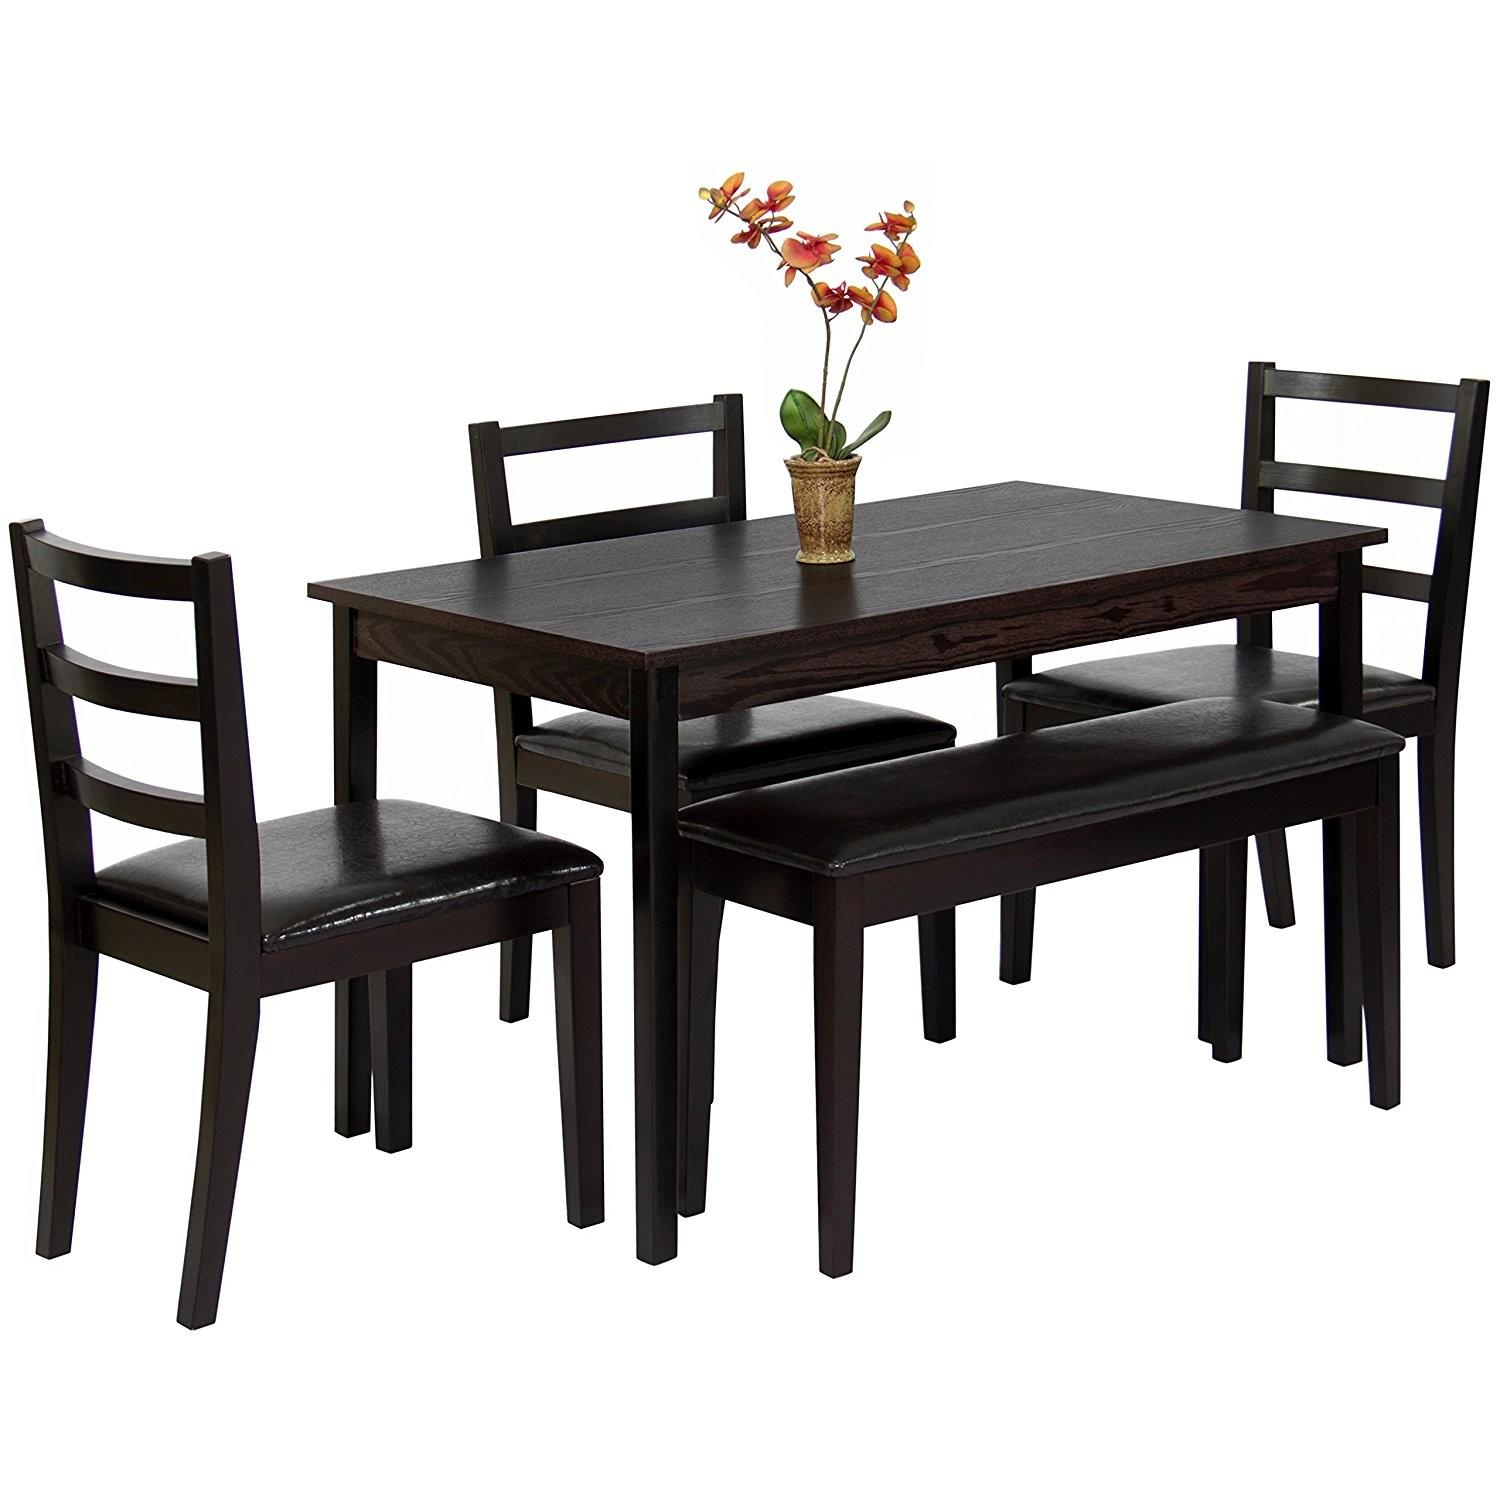 Best Dining Room Table Bench Chairs 2018